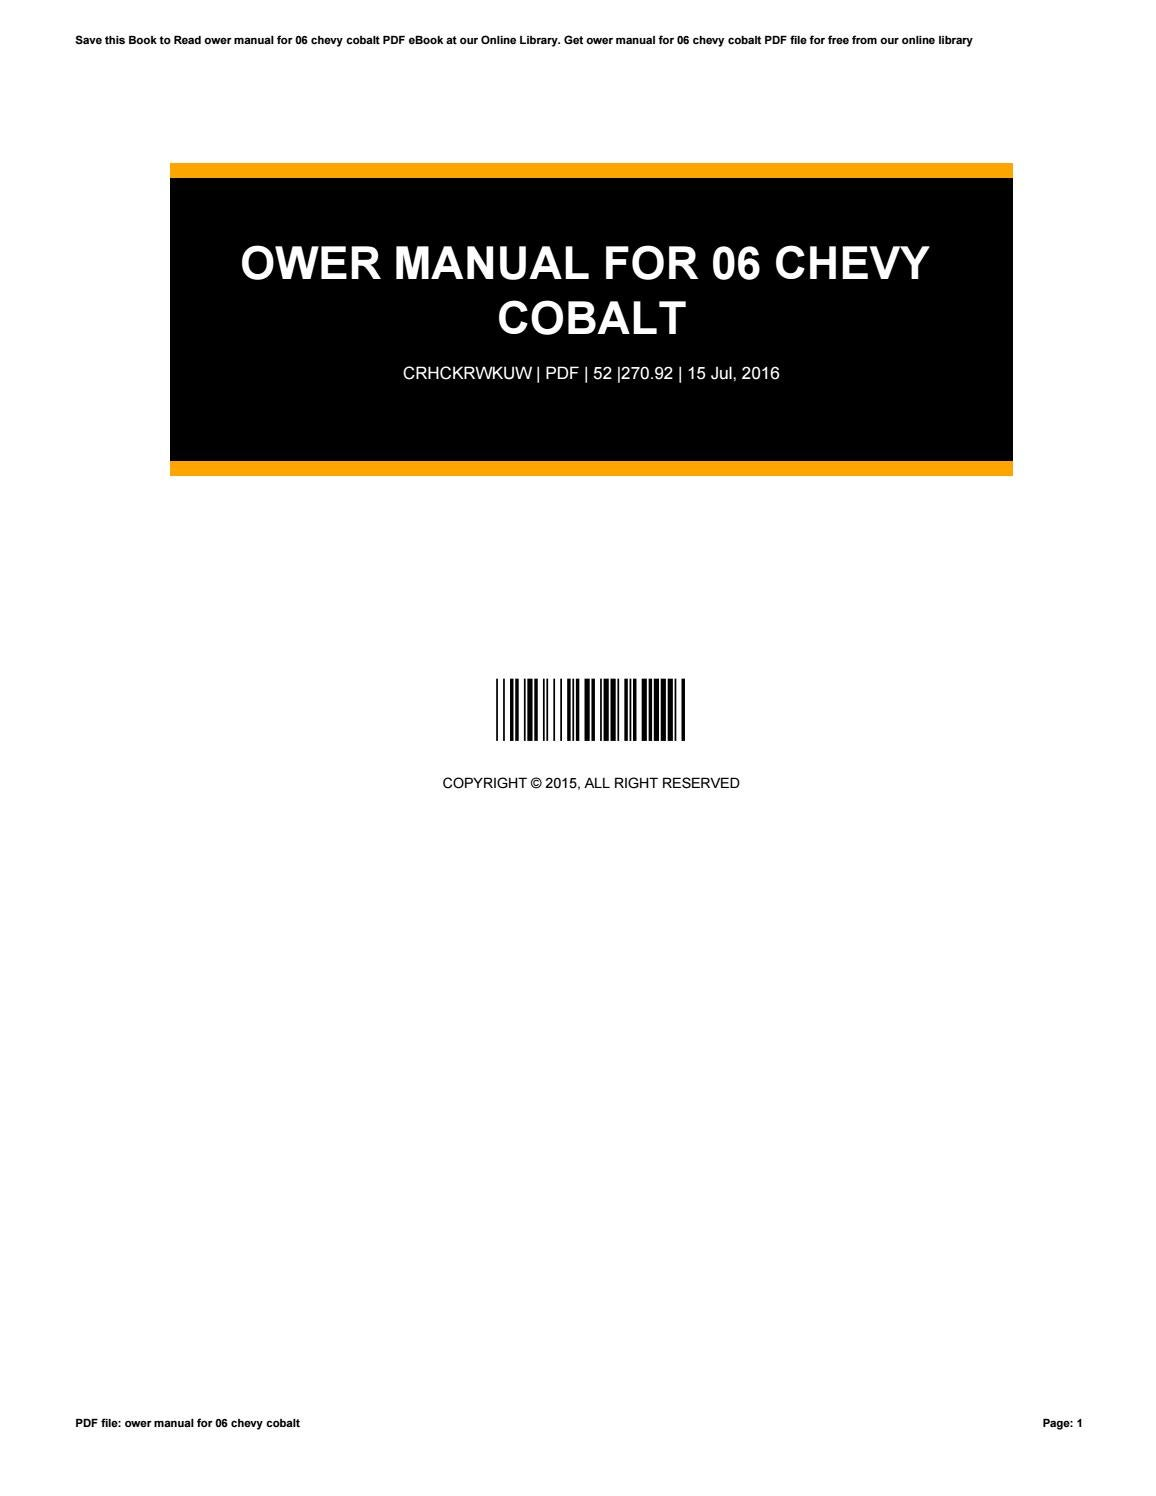 Chevy cobalt manual free 2010 chevrolet cobalt exterior photo array ower manual for 06 chevy cobalt by sehati95jaya issuu rh issuu fandeluxe Gallery